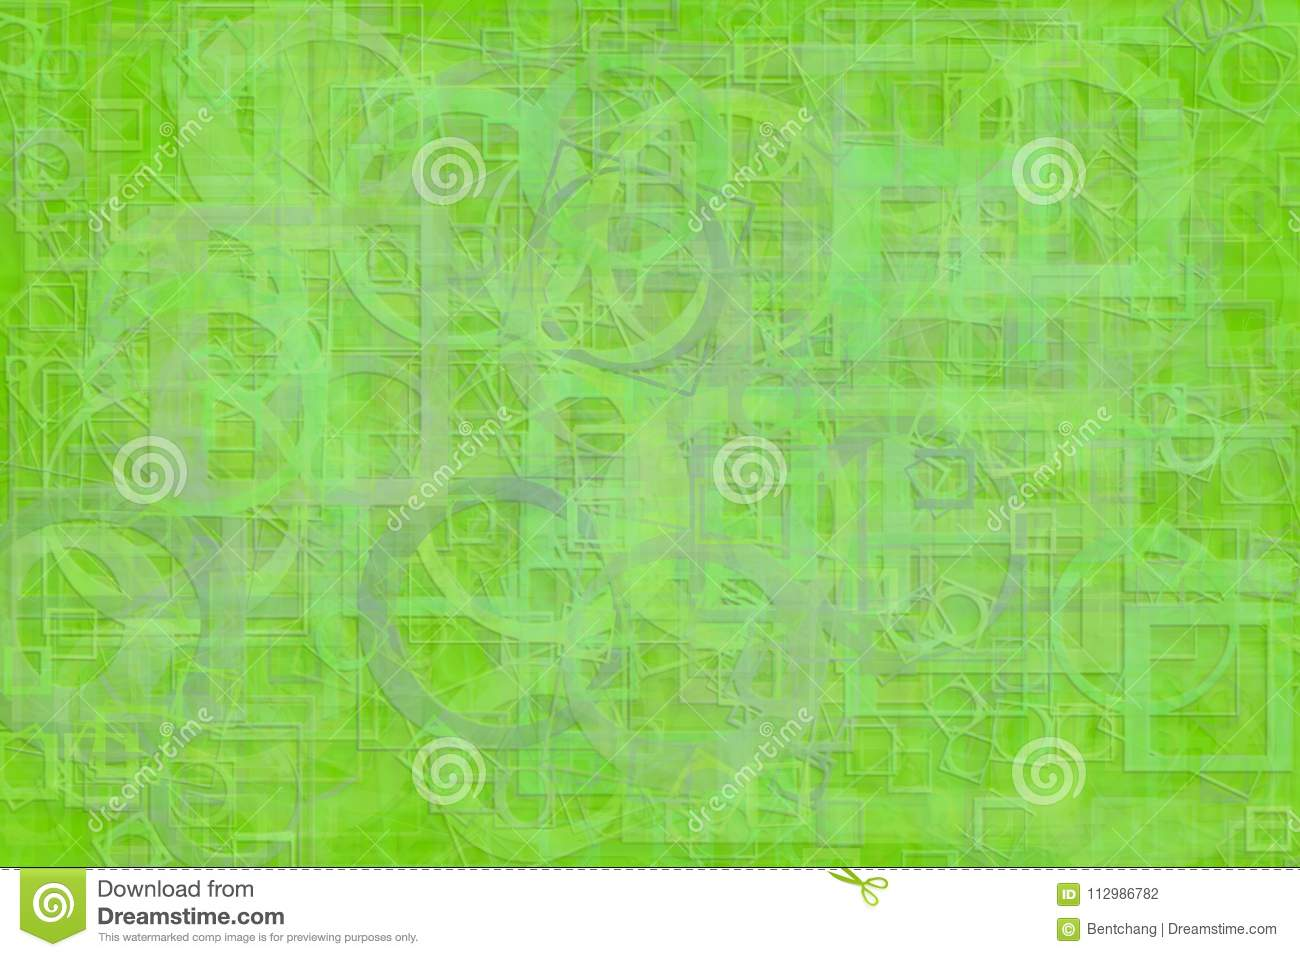 Background abstract shape, pattern for design. Emboss, paper, wallpaper & canvas.